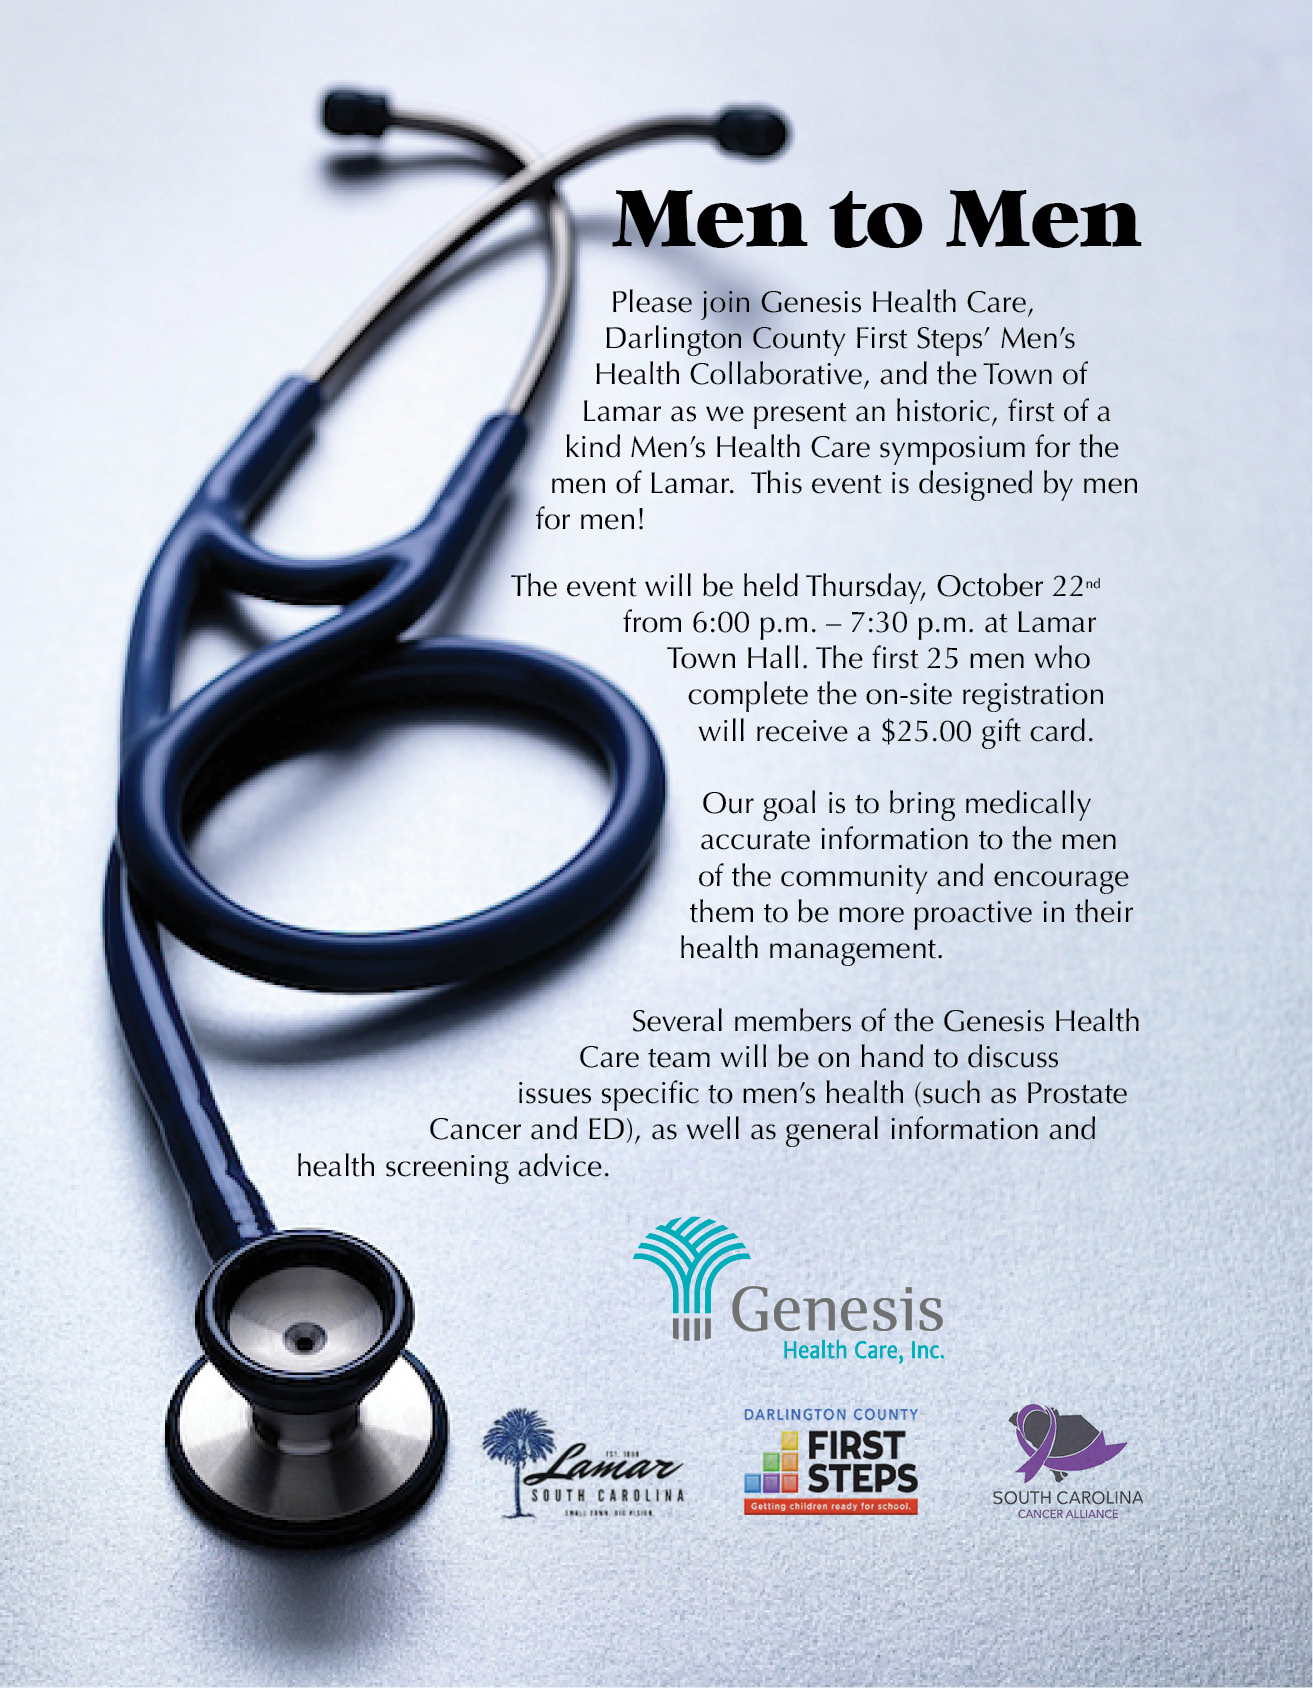 Men to Men Health Care Symposium